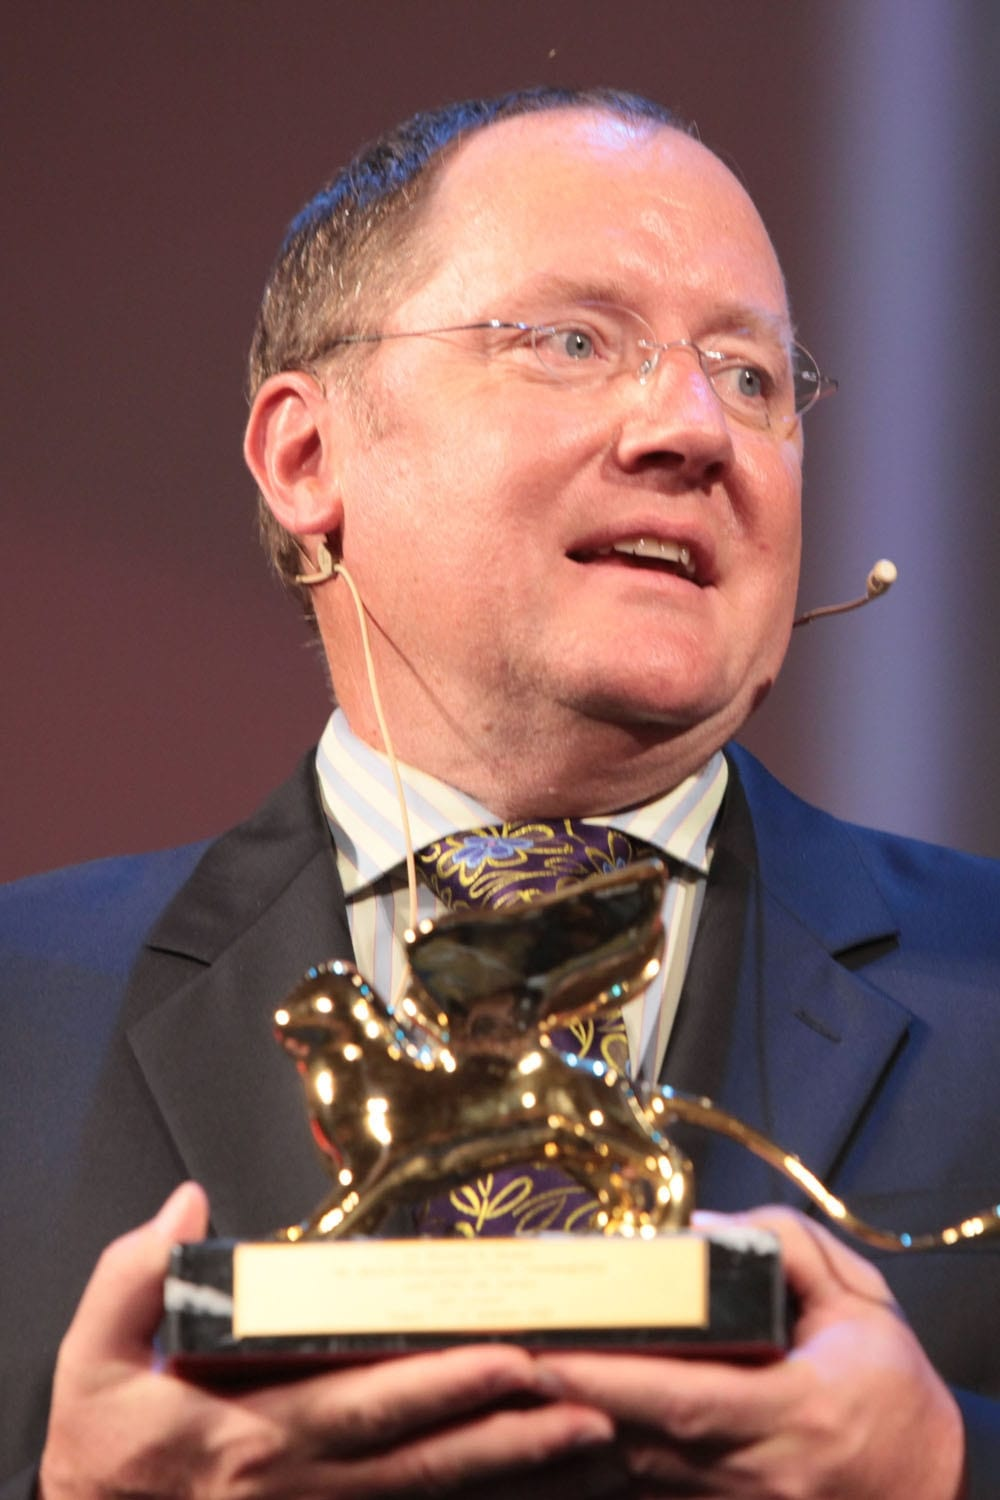 john lasseter filmography and biography on moviesfilm